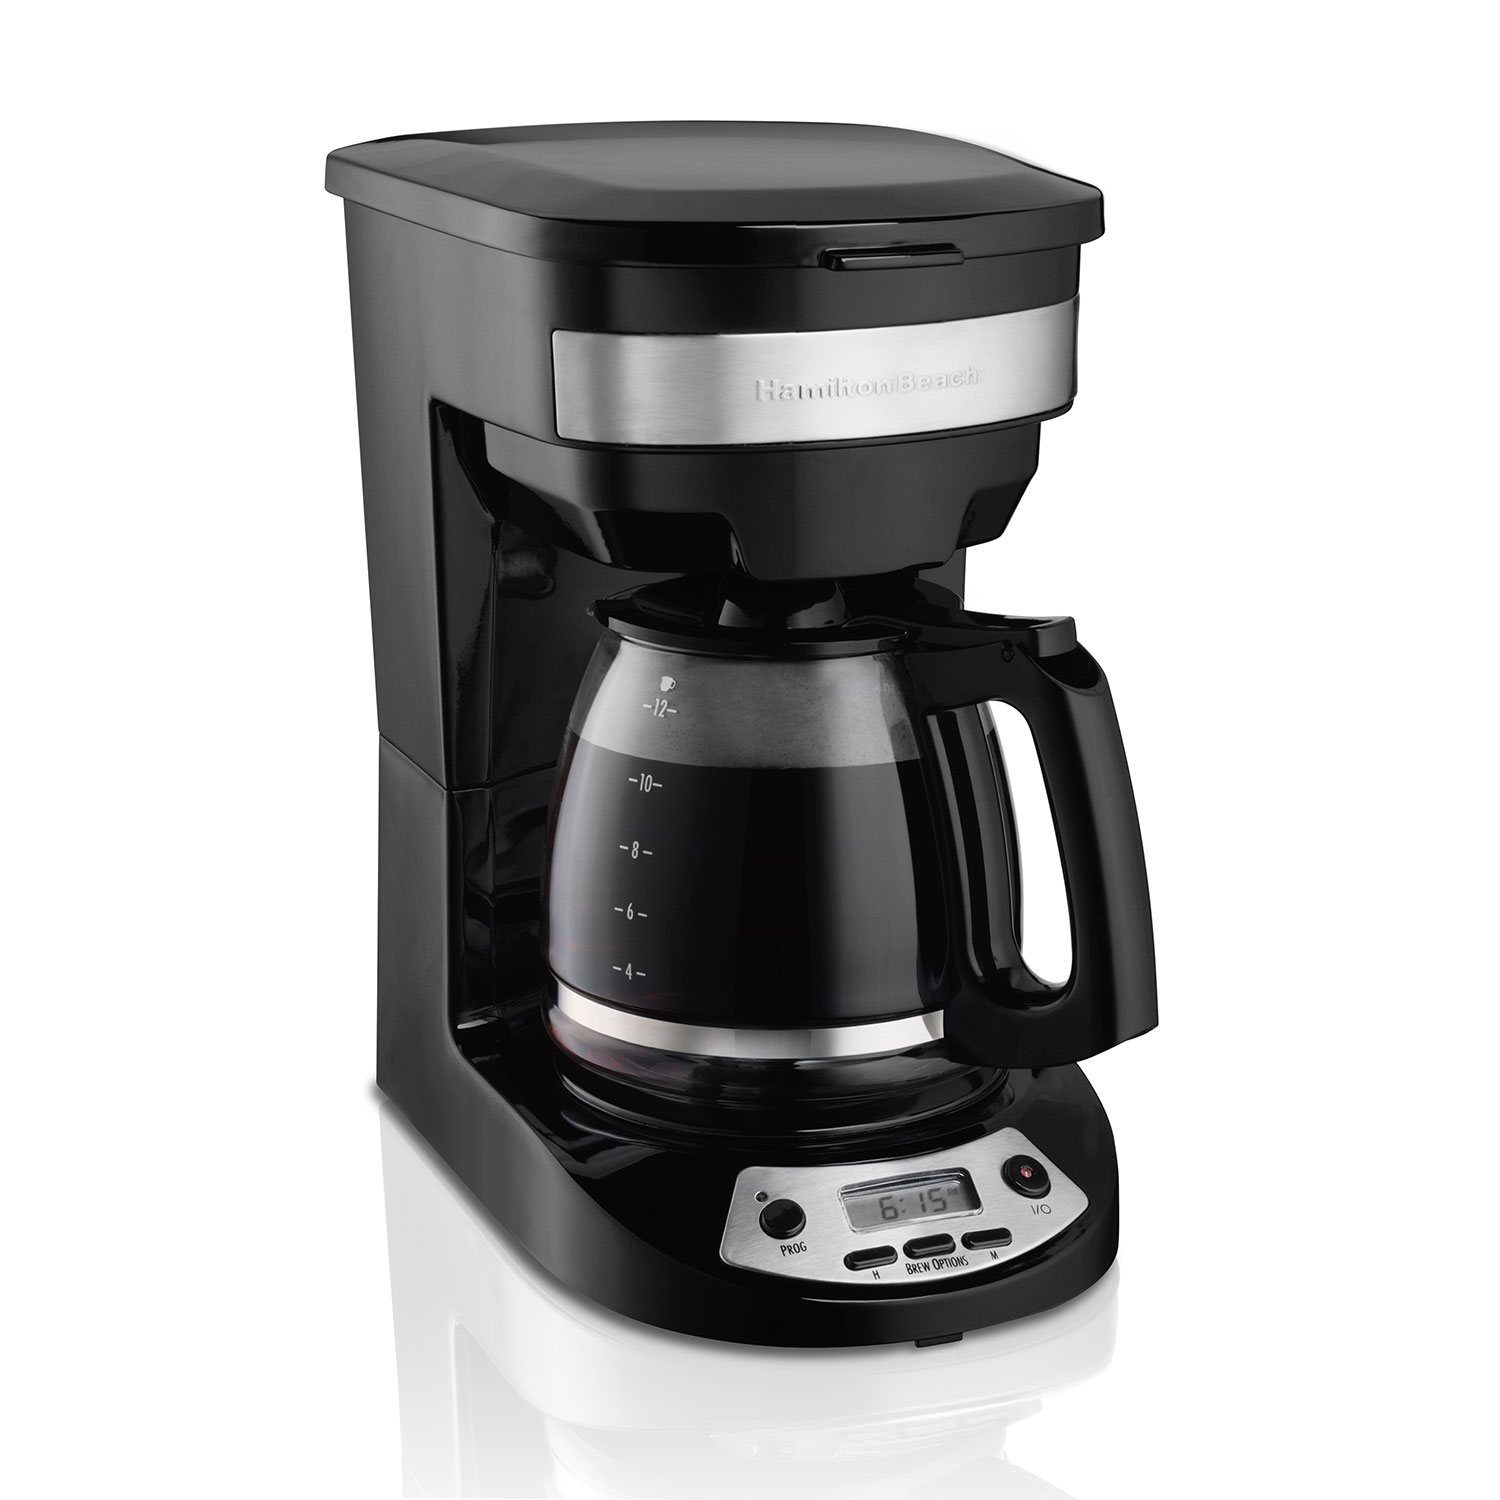 12 Cup Programmable Coffee Maker (46320)